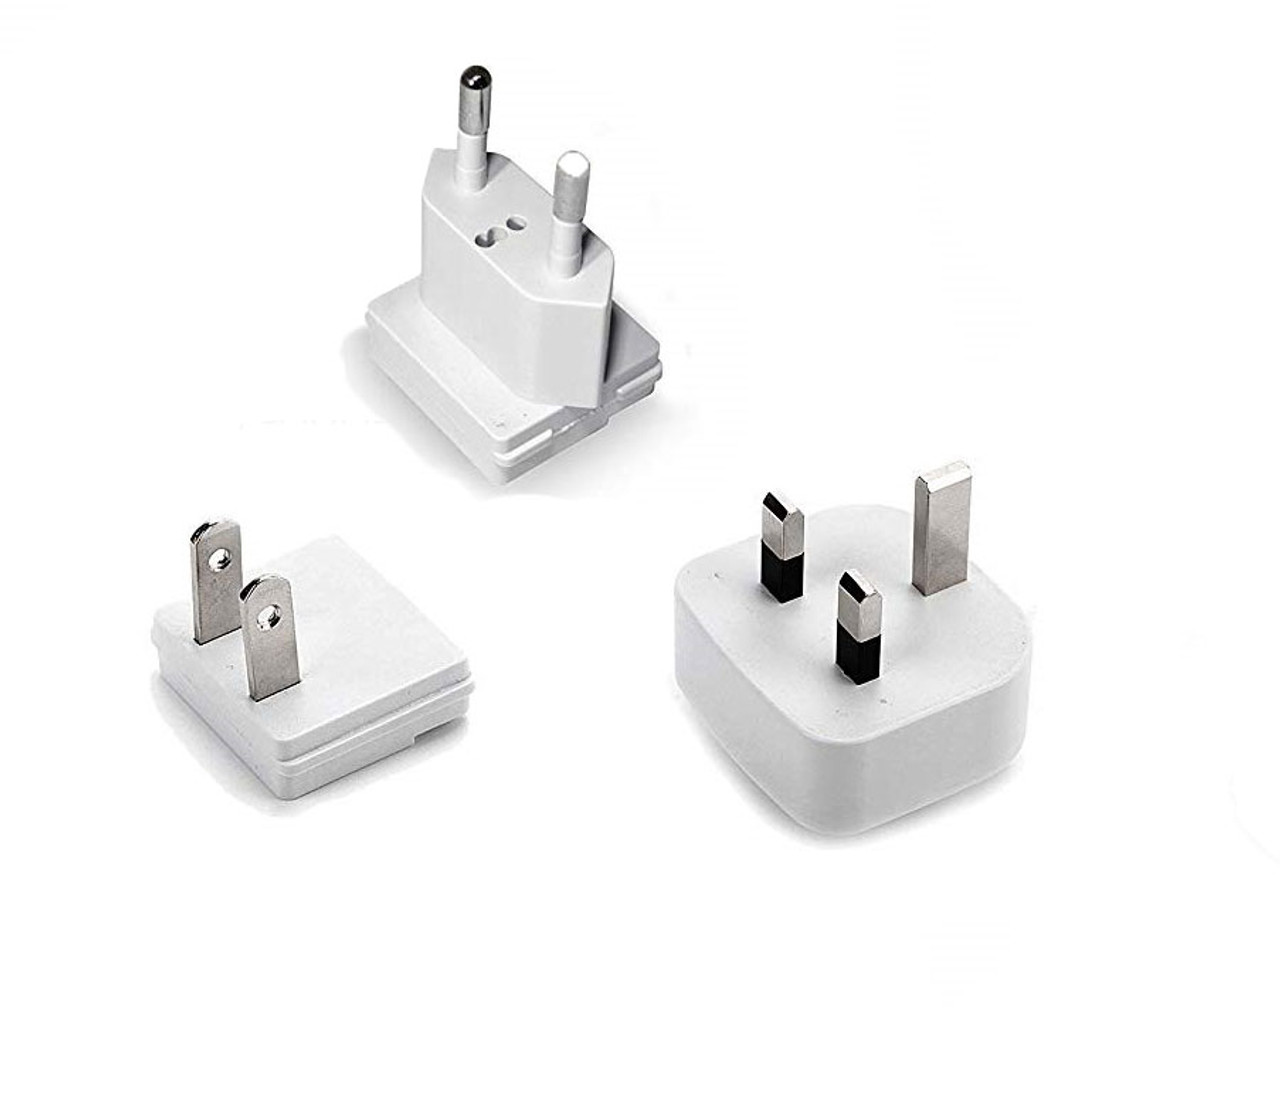 Travel Adaptor Kit for UC001